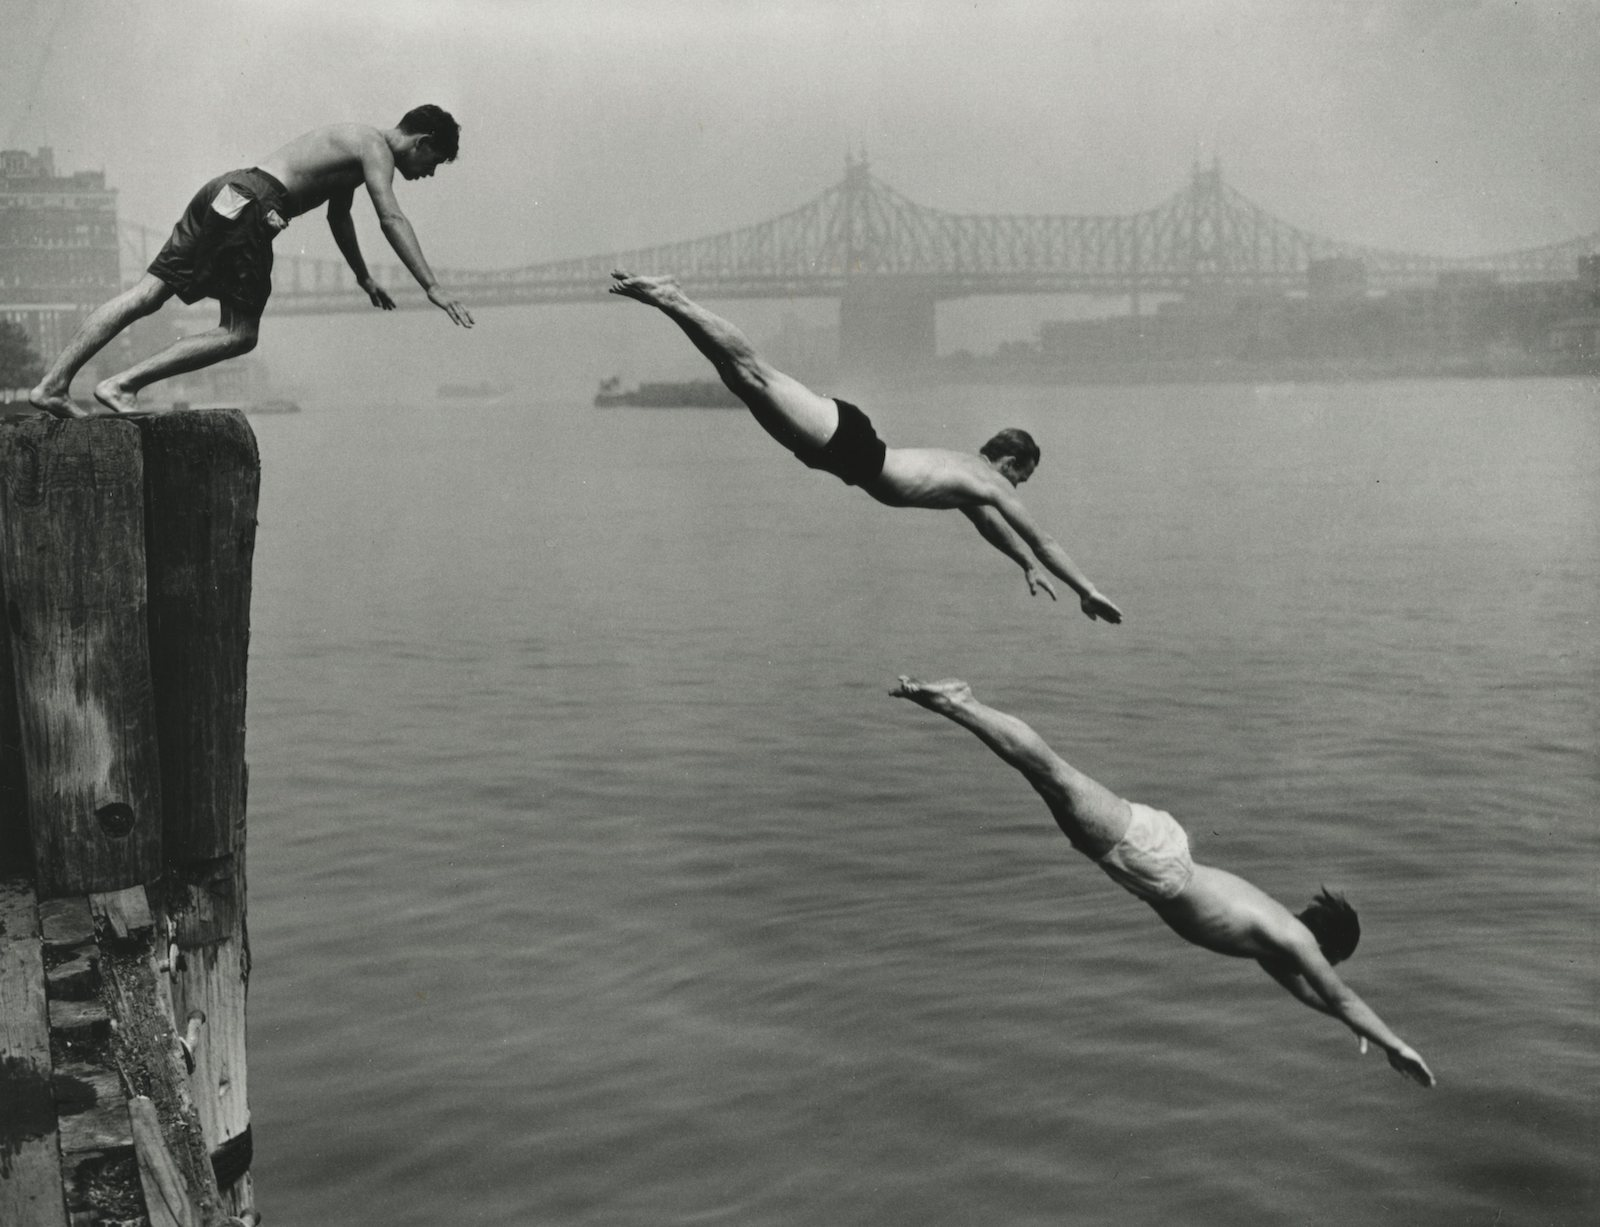 Divers, East River, 1948